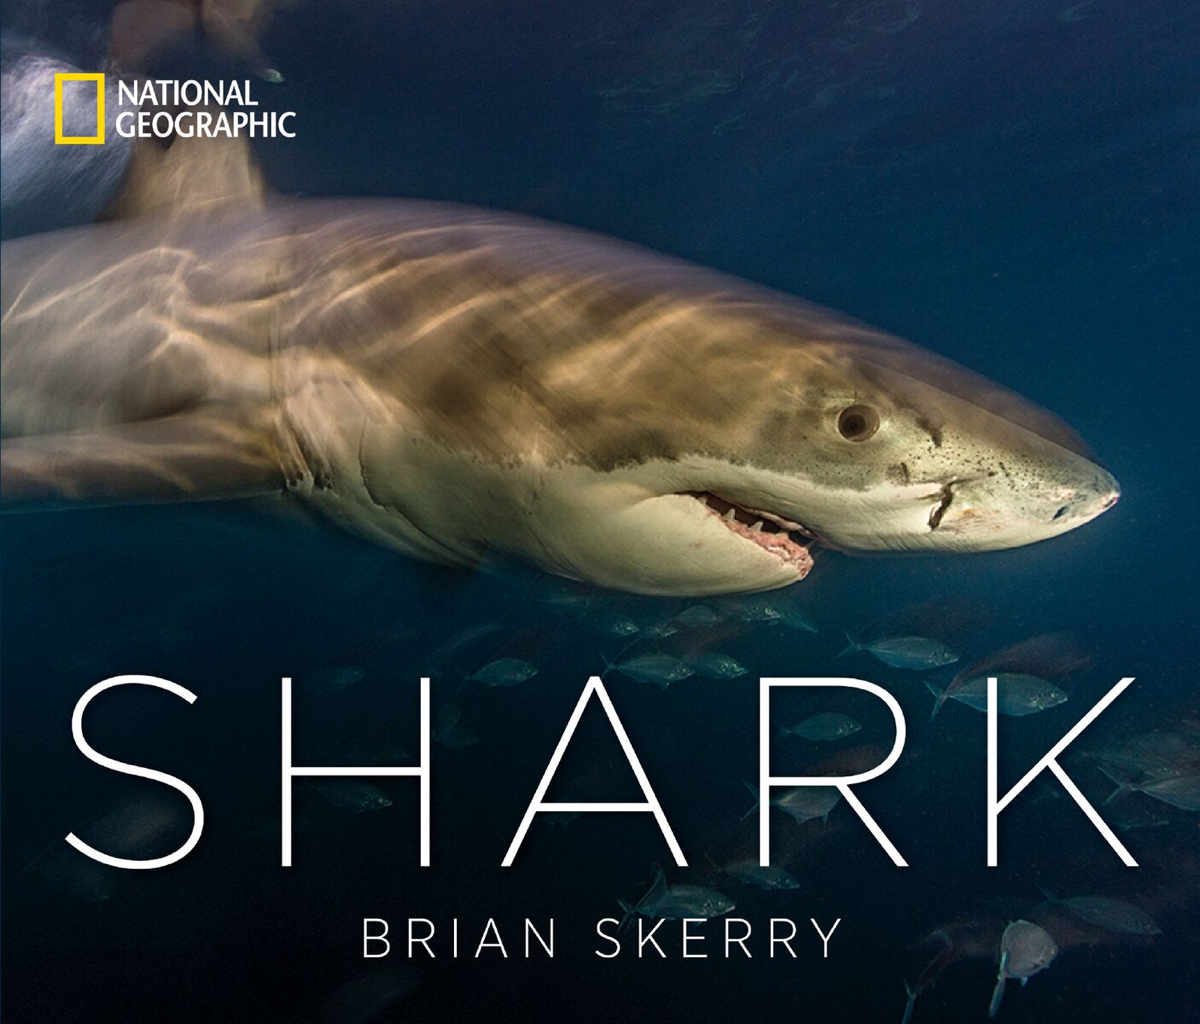 Brian Skerry shark book photography